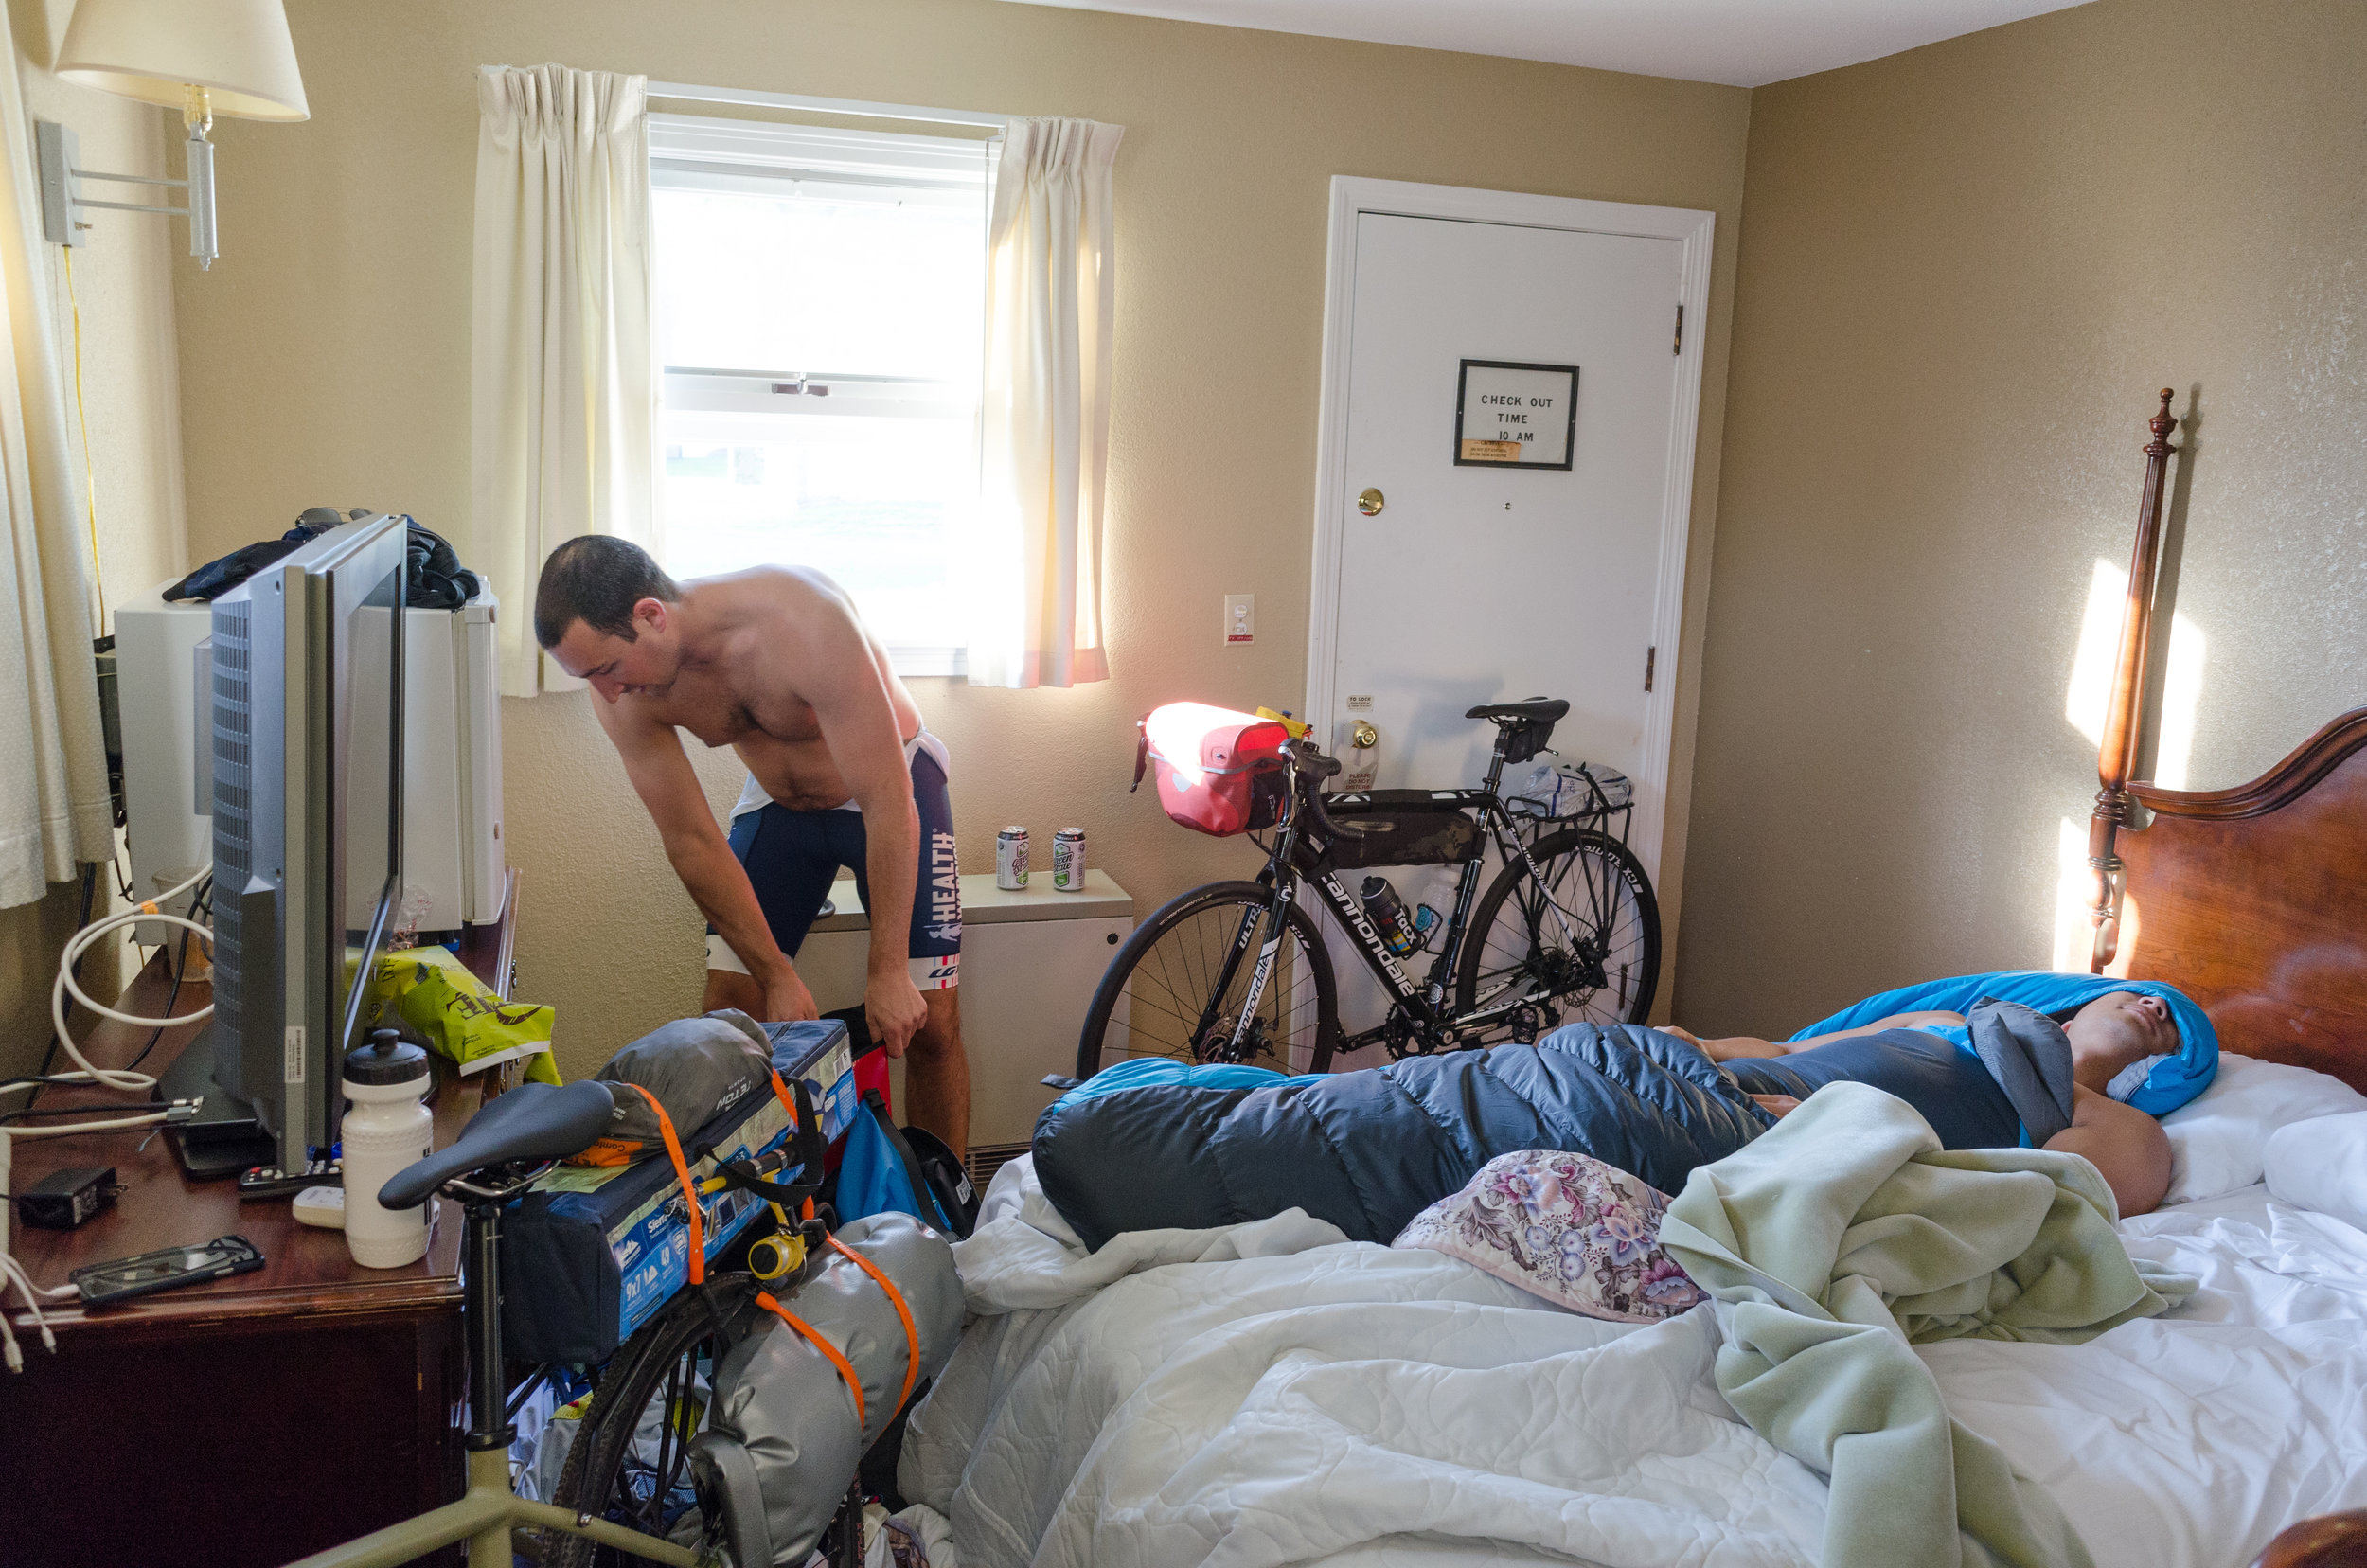 From there it was an early morning of preparing bikes for the task at hand in a very crowded motel bedroom.